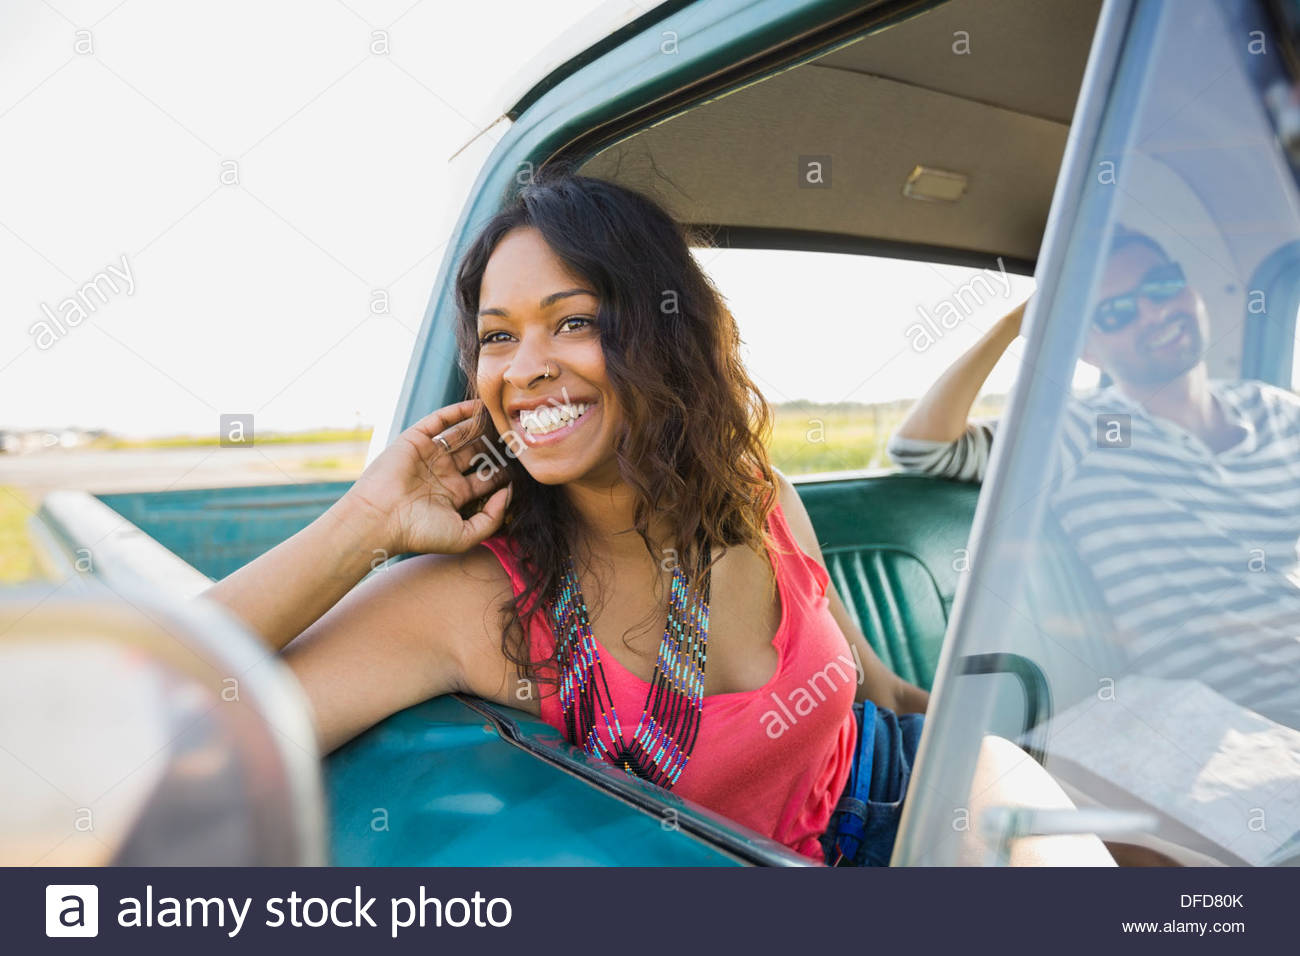 Woman looking out from window of pick-up truck - Stock Image